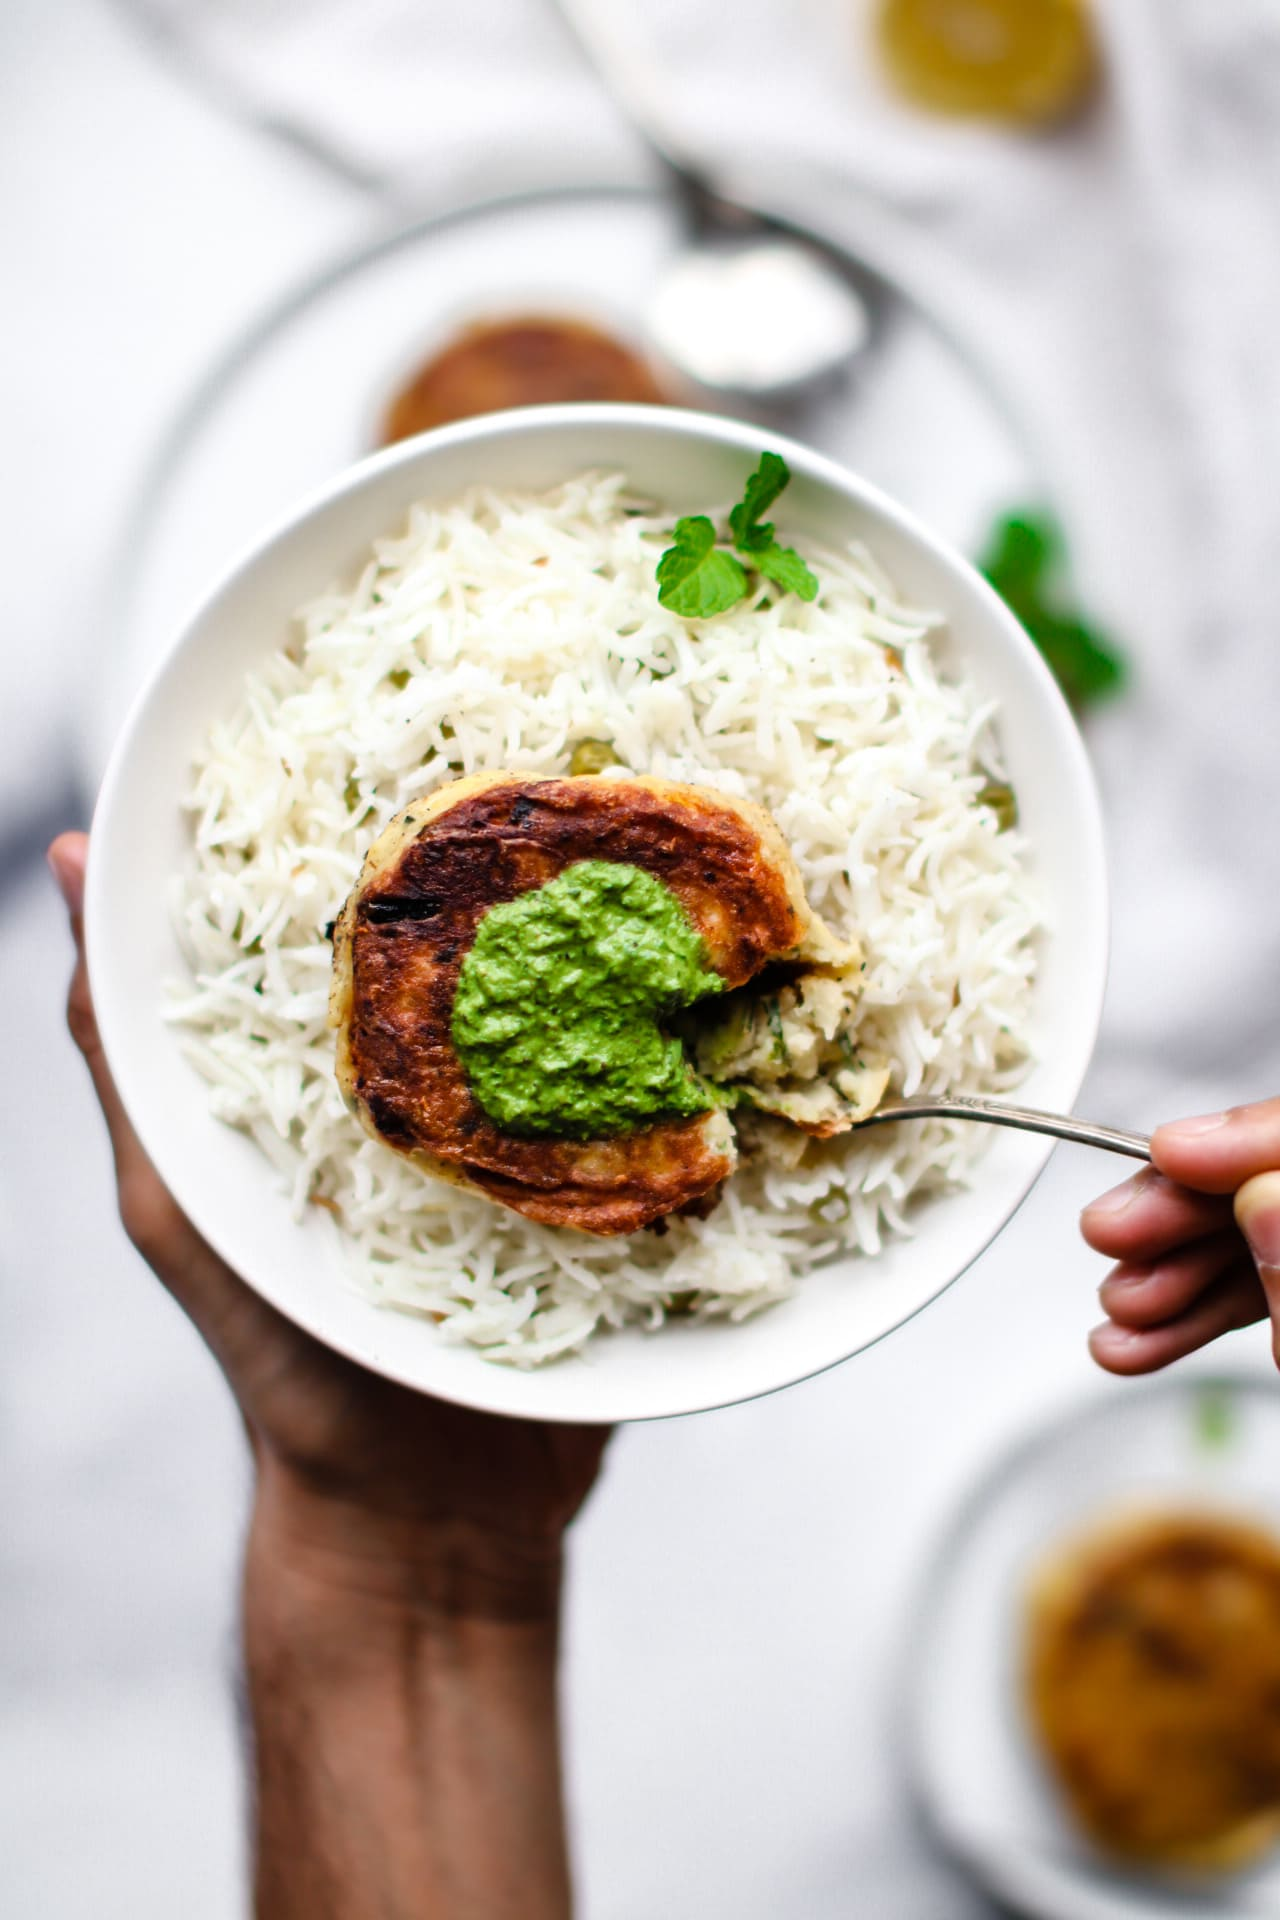 Eating an Aloo Ki Tikki (Pakistani-Style Potato Cake) spread with green chutney in a white bowl filled with basmati rice.